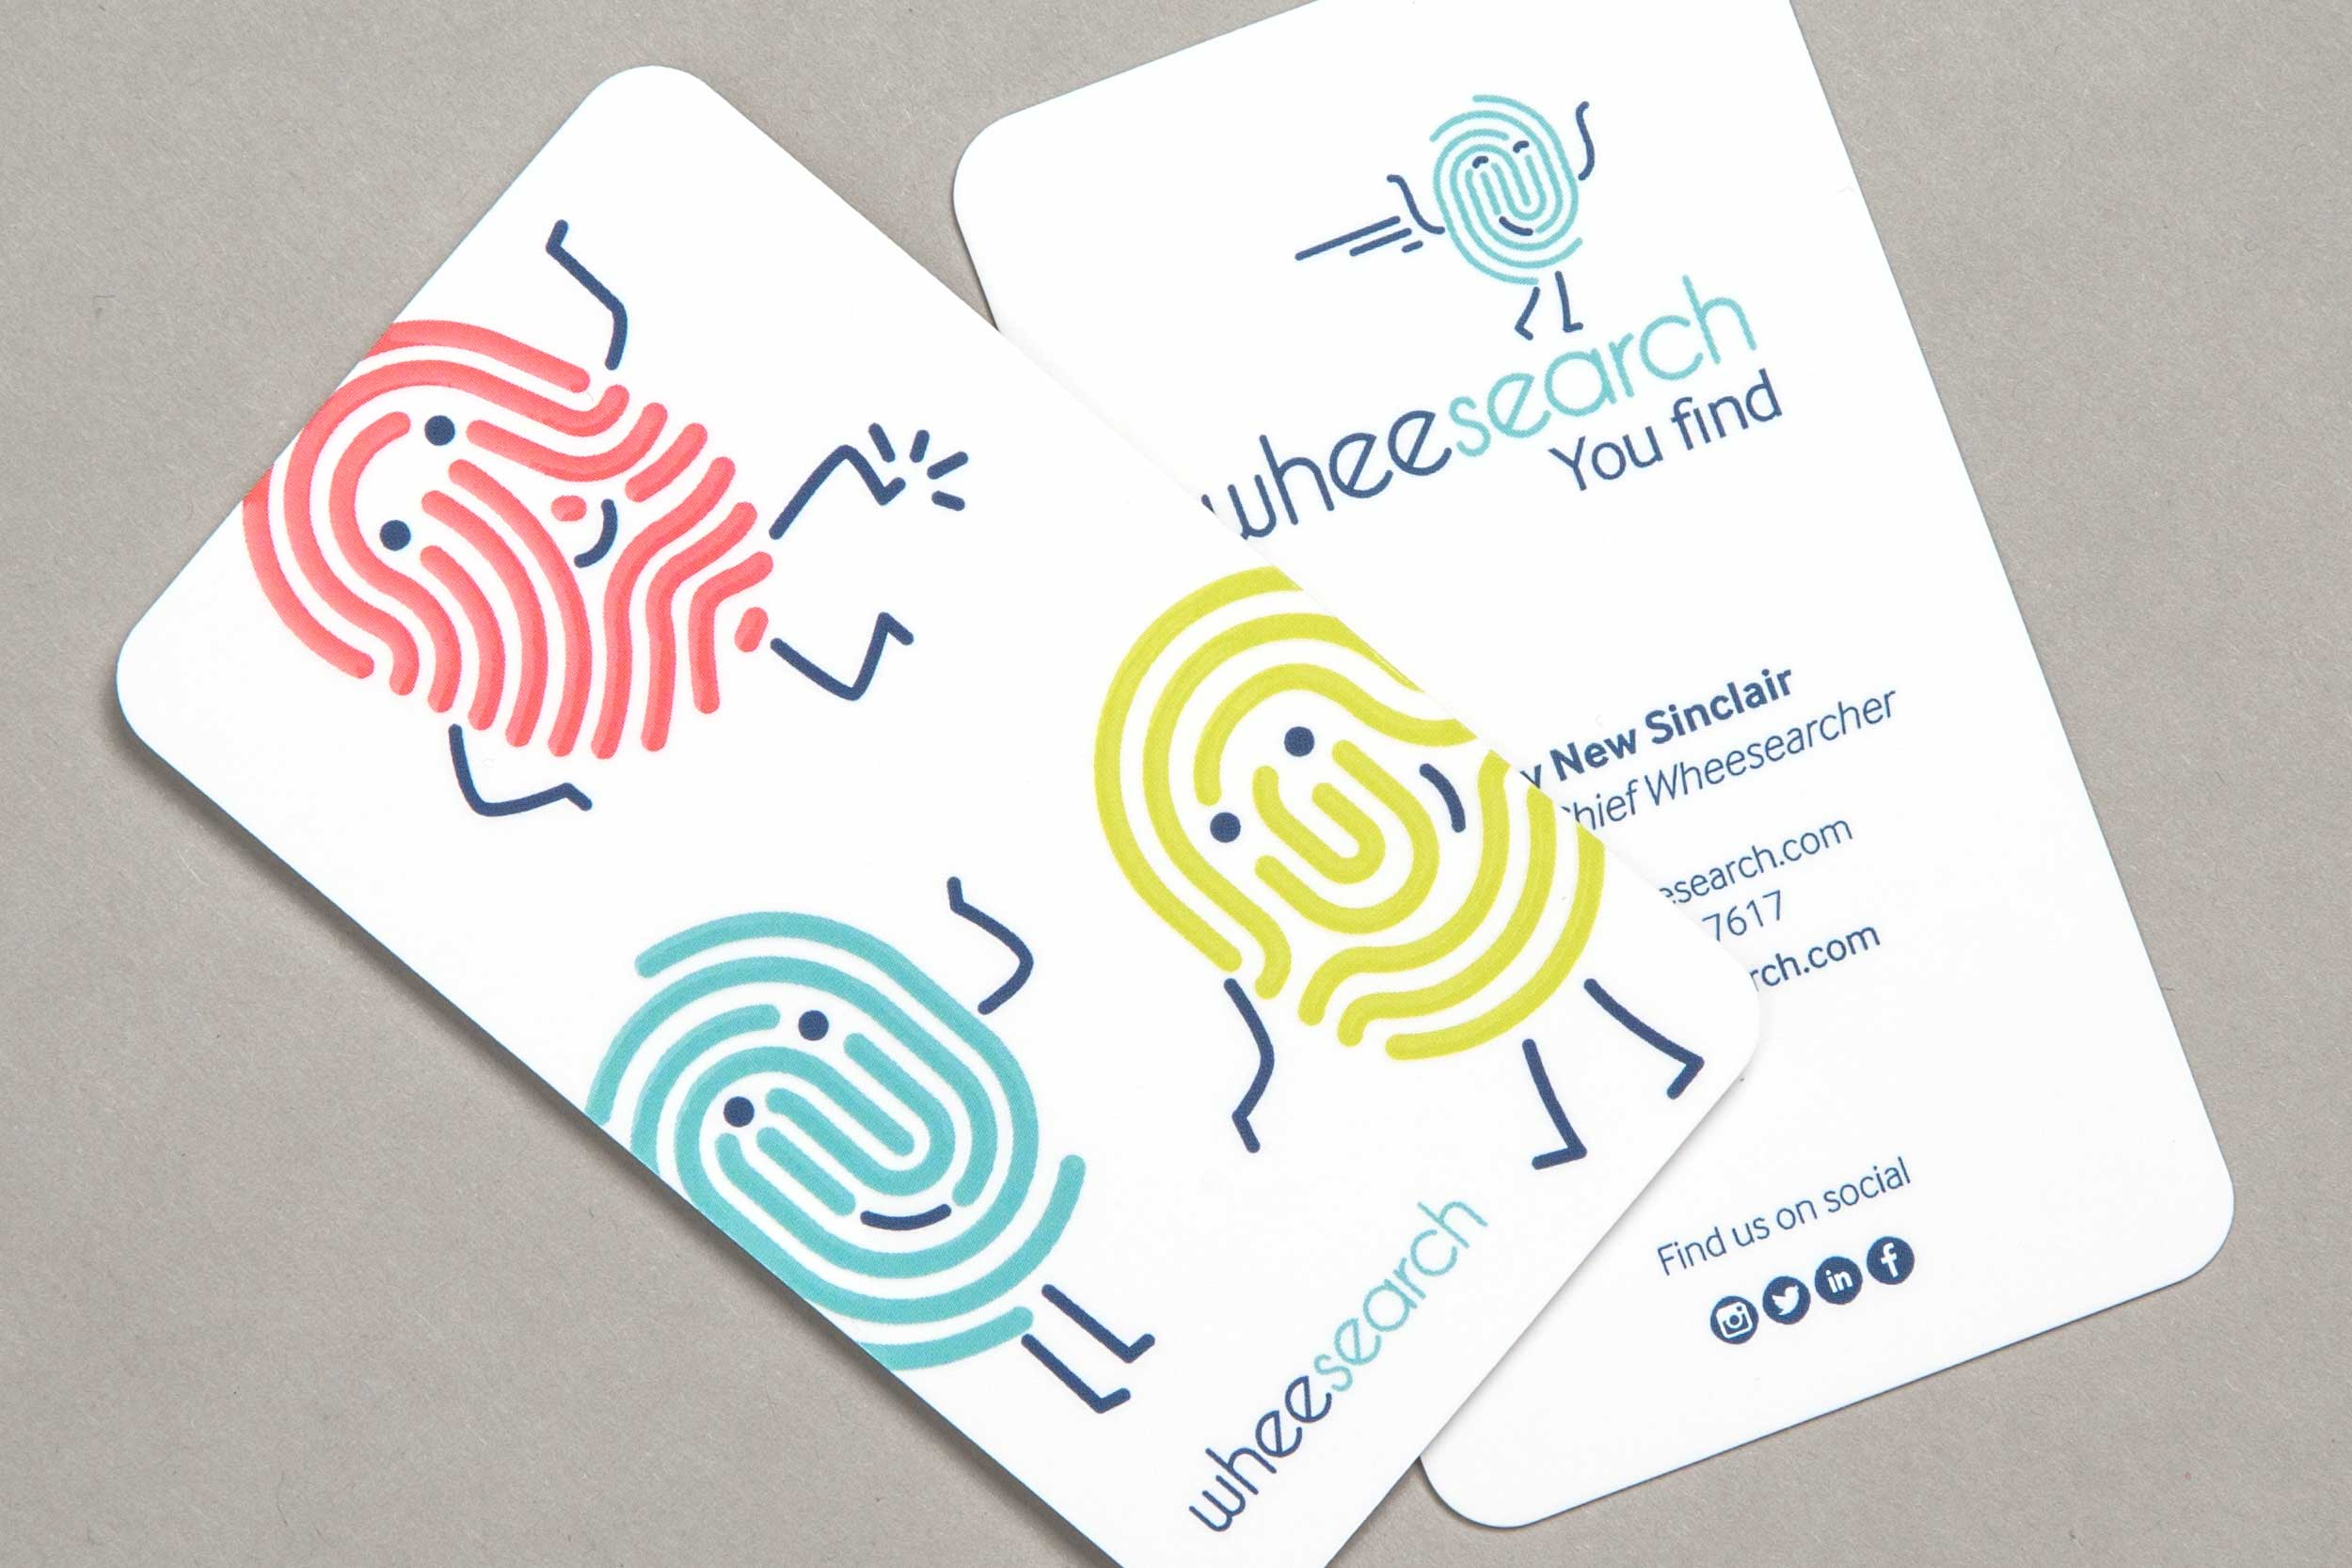 Finger print business cards with spot varnish for the Wheesearch brand.